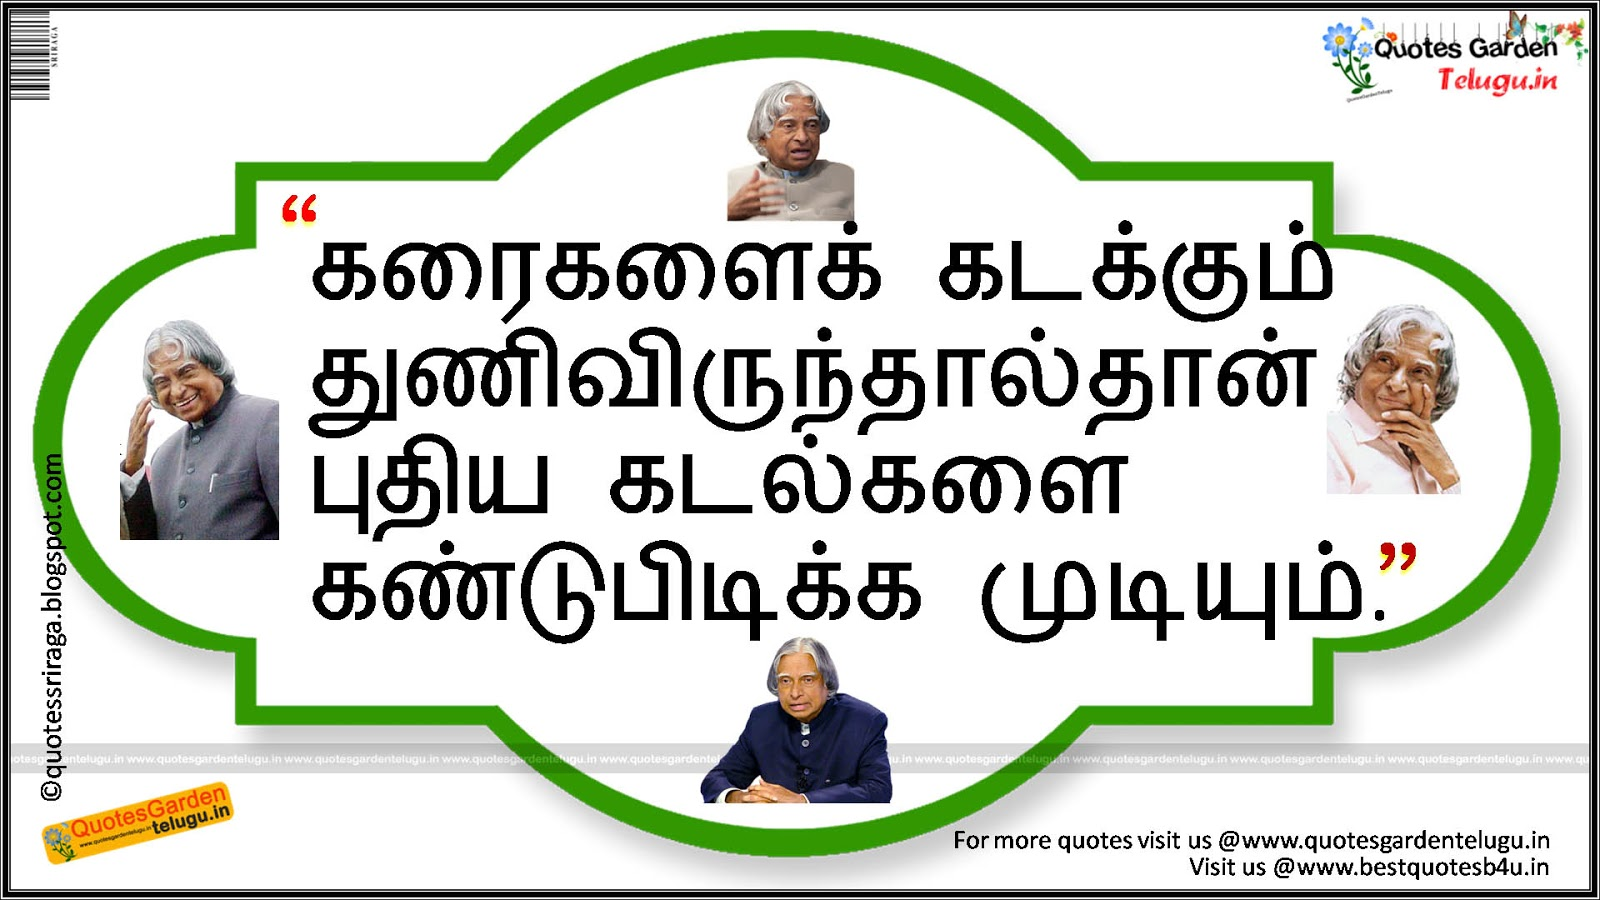 Swami Vivekananda Quotes Wallpapers In Hindi Golden Words From Abdul Kalam In Tamil Quotes Garden